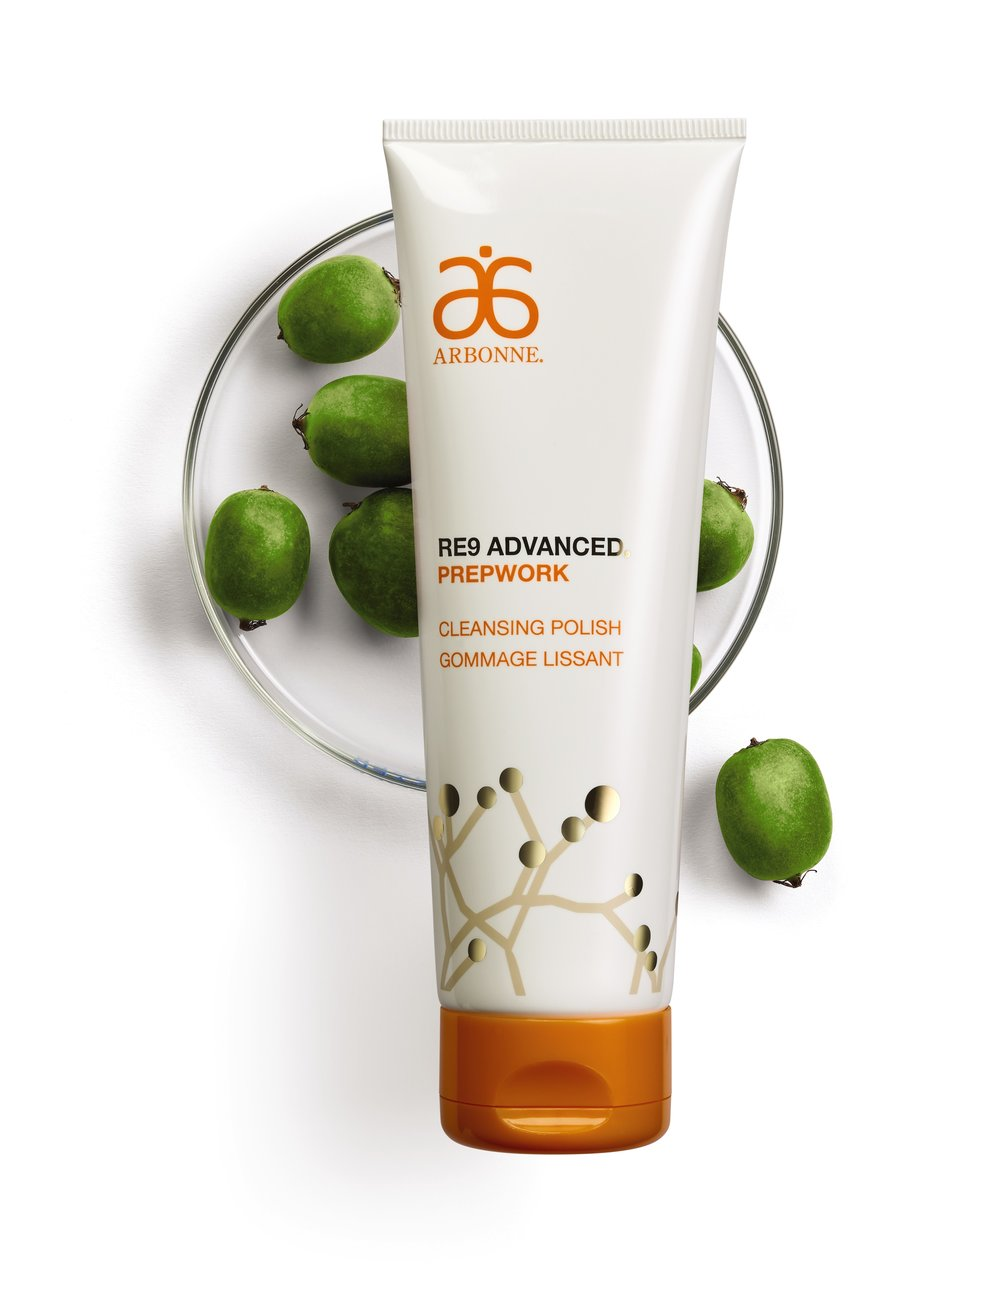 Arbonne RE9 Advanced Prepwork Cleansing Polish_hero.jpg